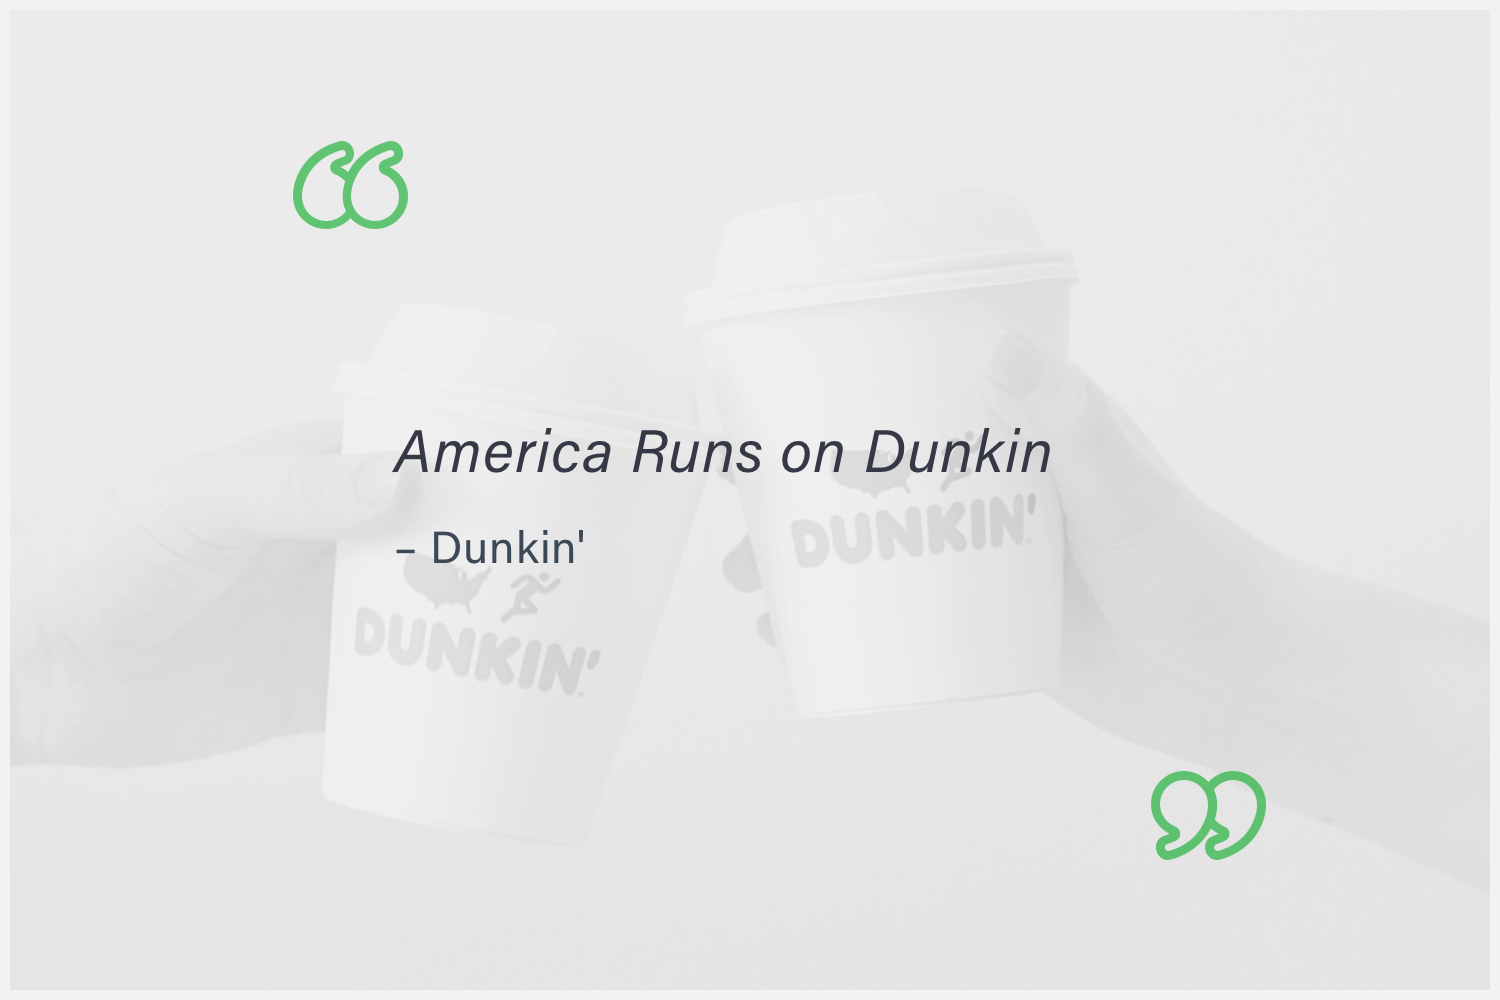 Quote: America runs on Dunkin.